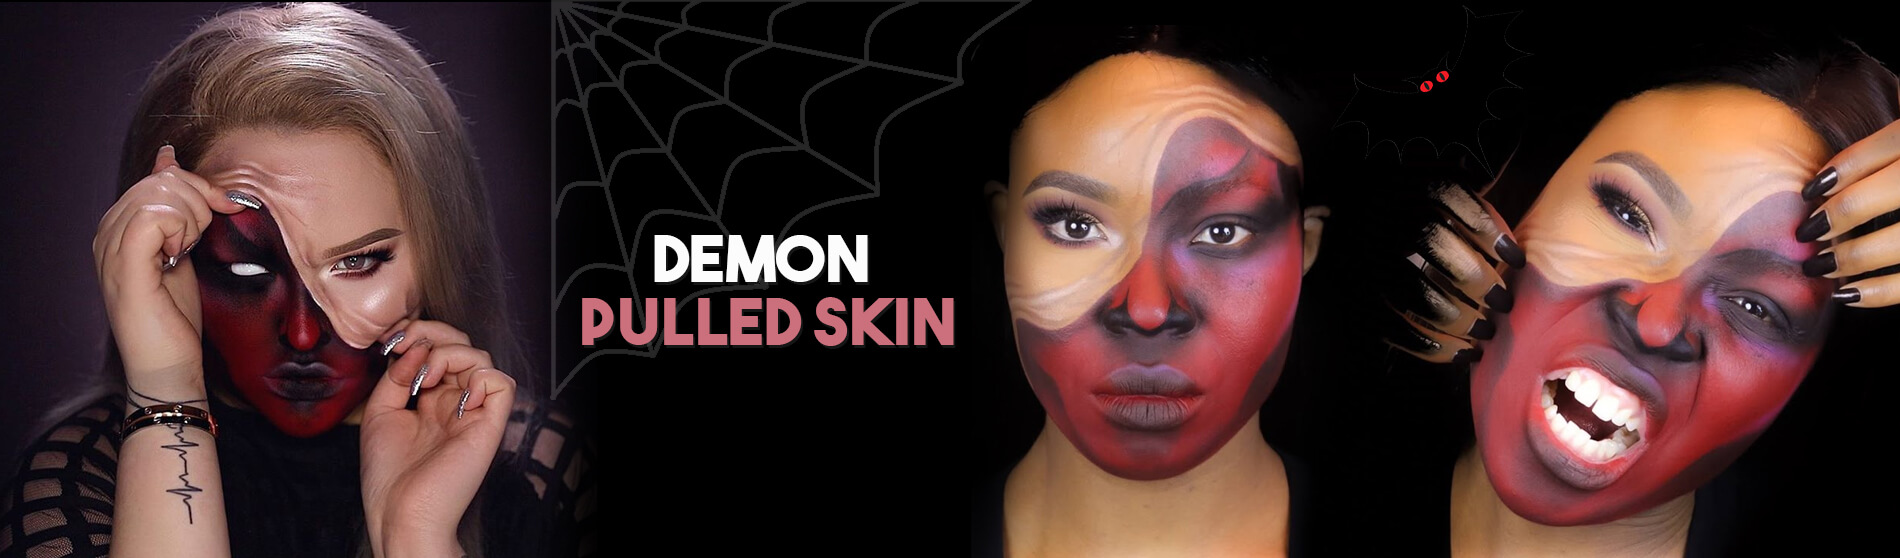 Demon-Pulled-Skin